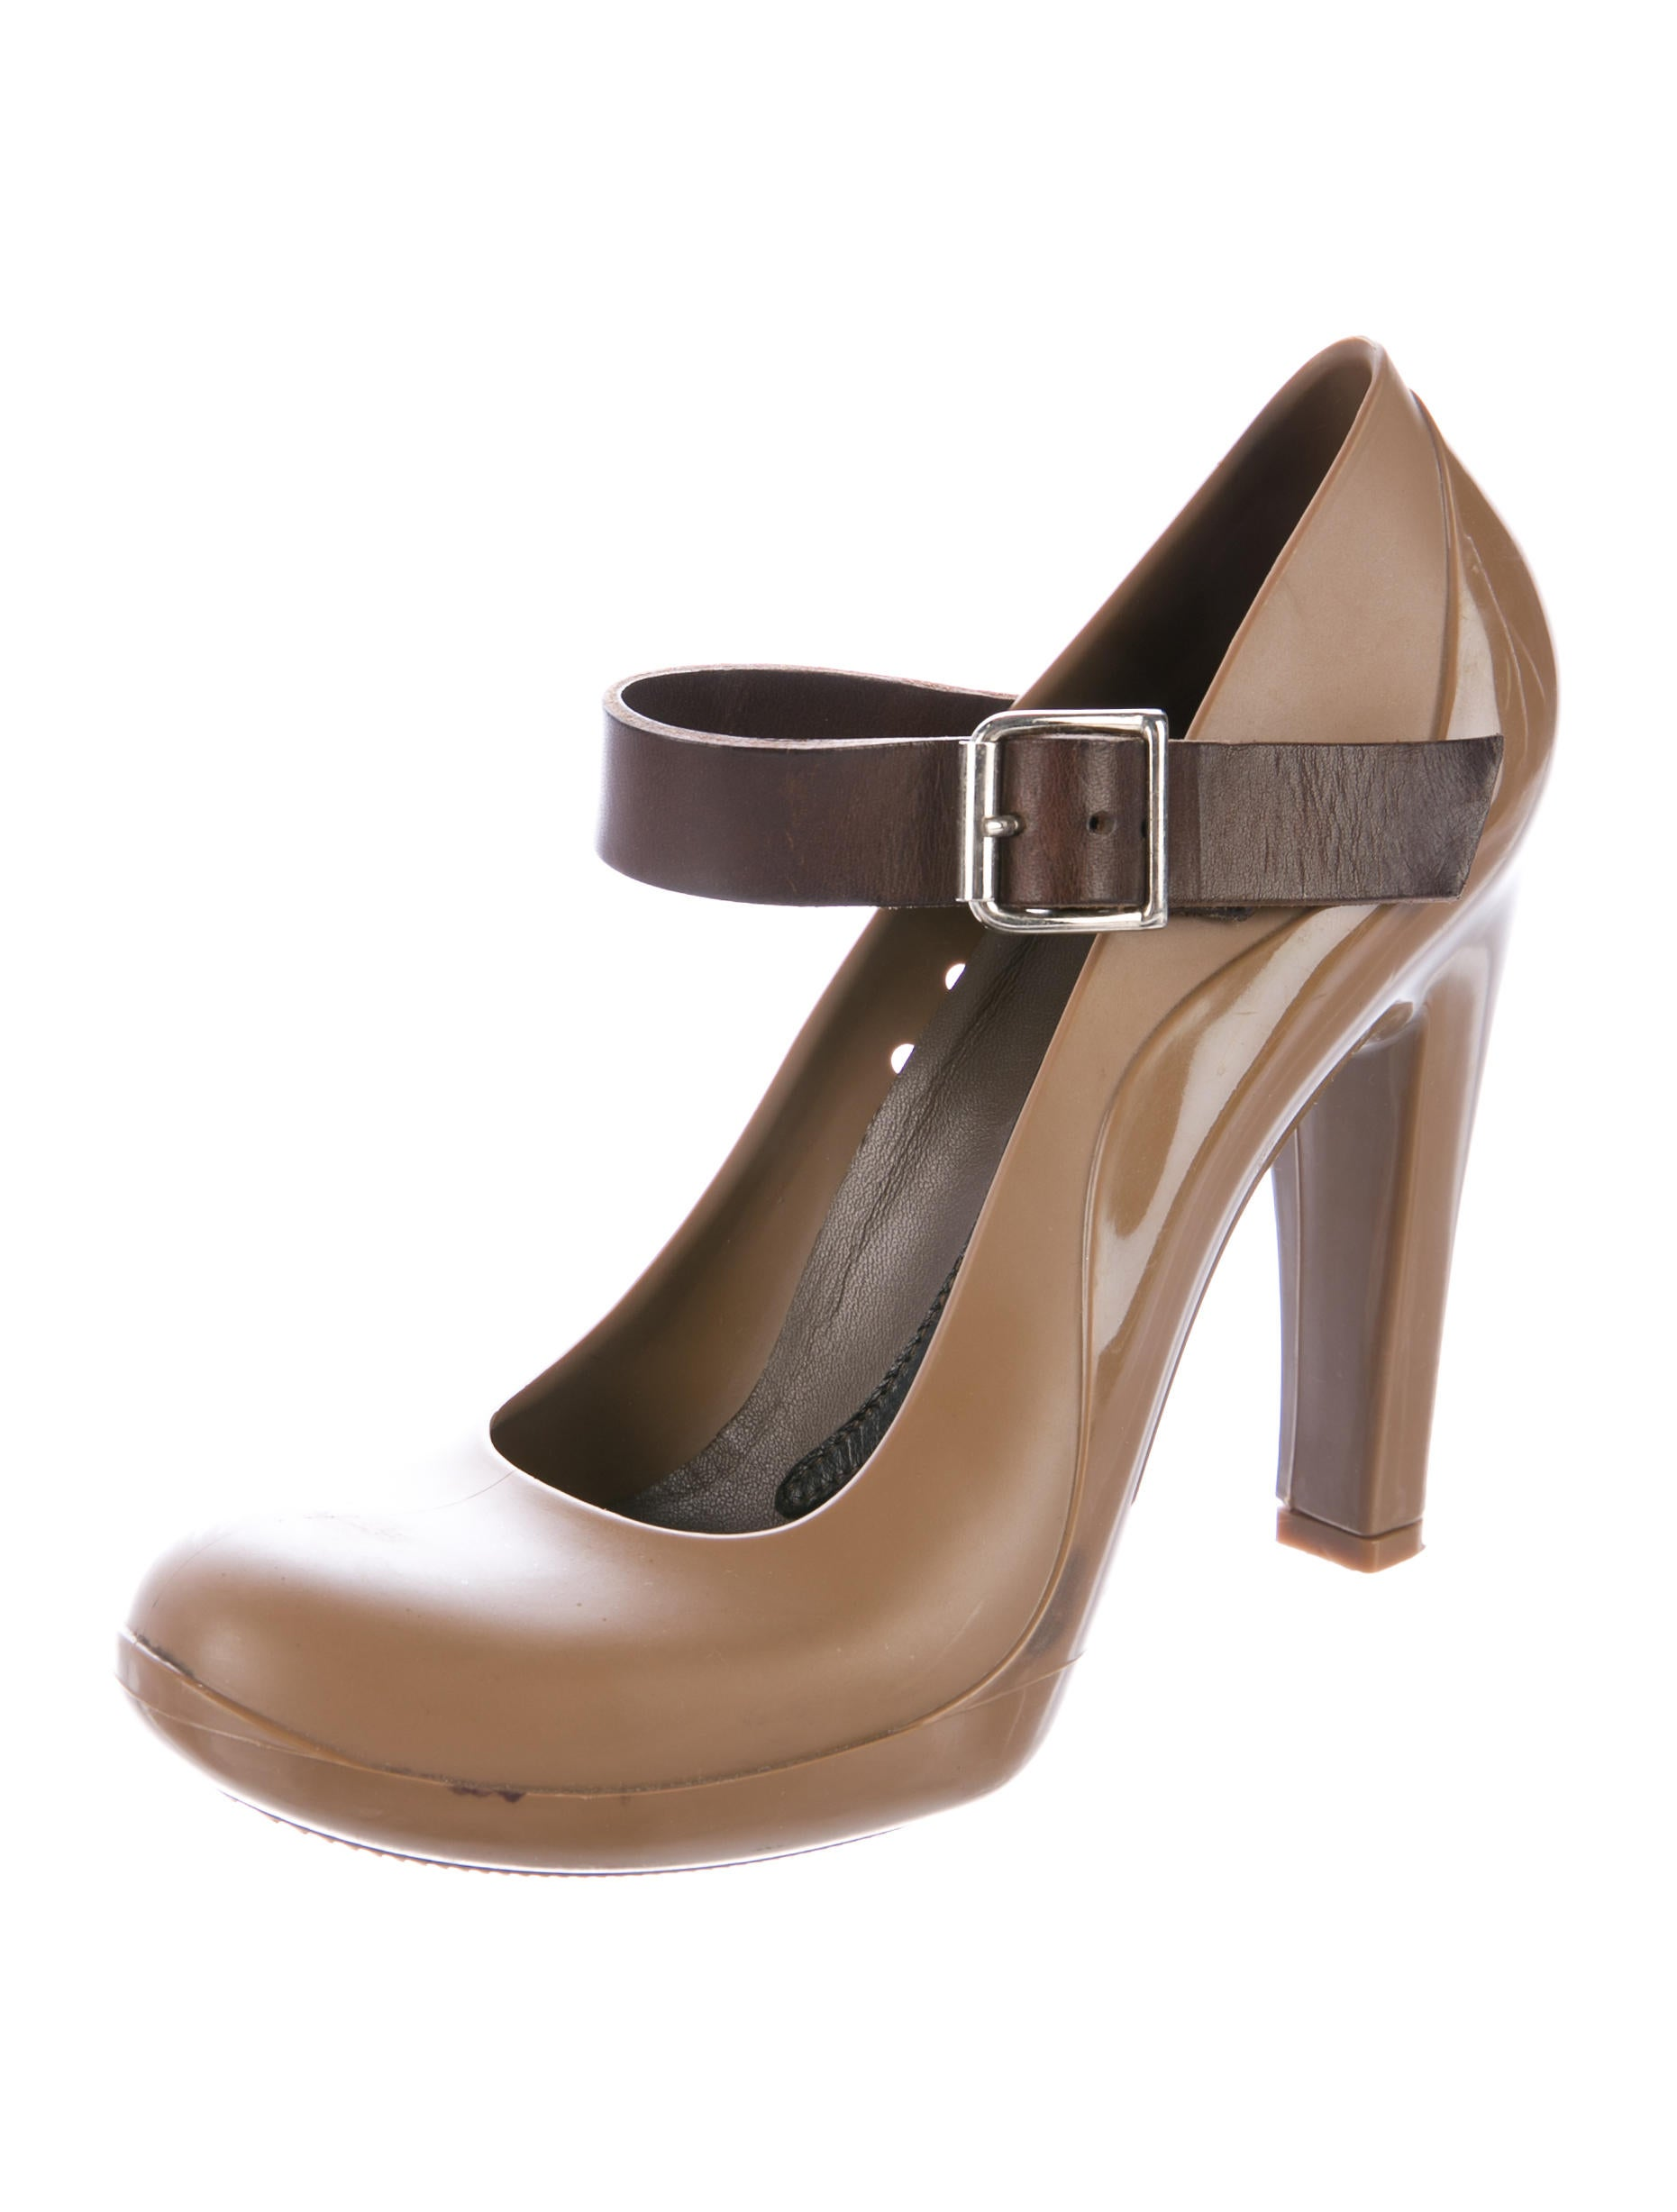 Read Rubber Shoes Rubber Pumps Reviews and Customer Ratings on Rubber Shoes Rubber Pumps Reviews, Shoes, Middle Heels, Women's Pumps, Mother & Kids Reviews and more at nirtsnom.tk Buy Cheap Rubber Shoes Rubber Pumps Now.